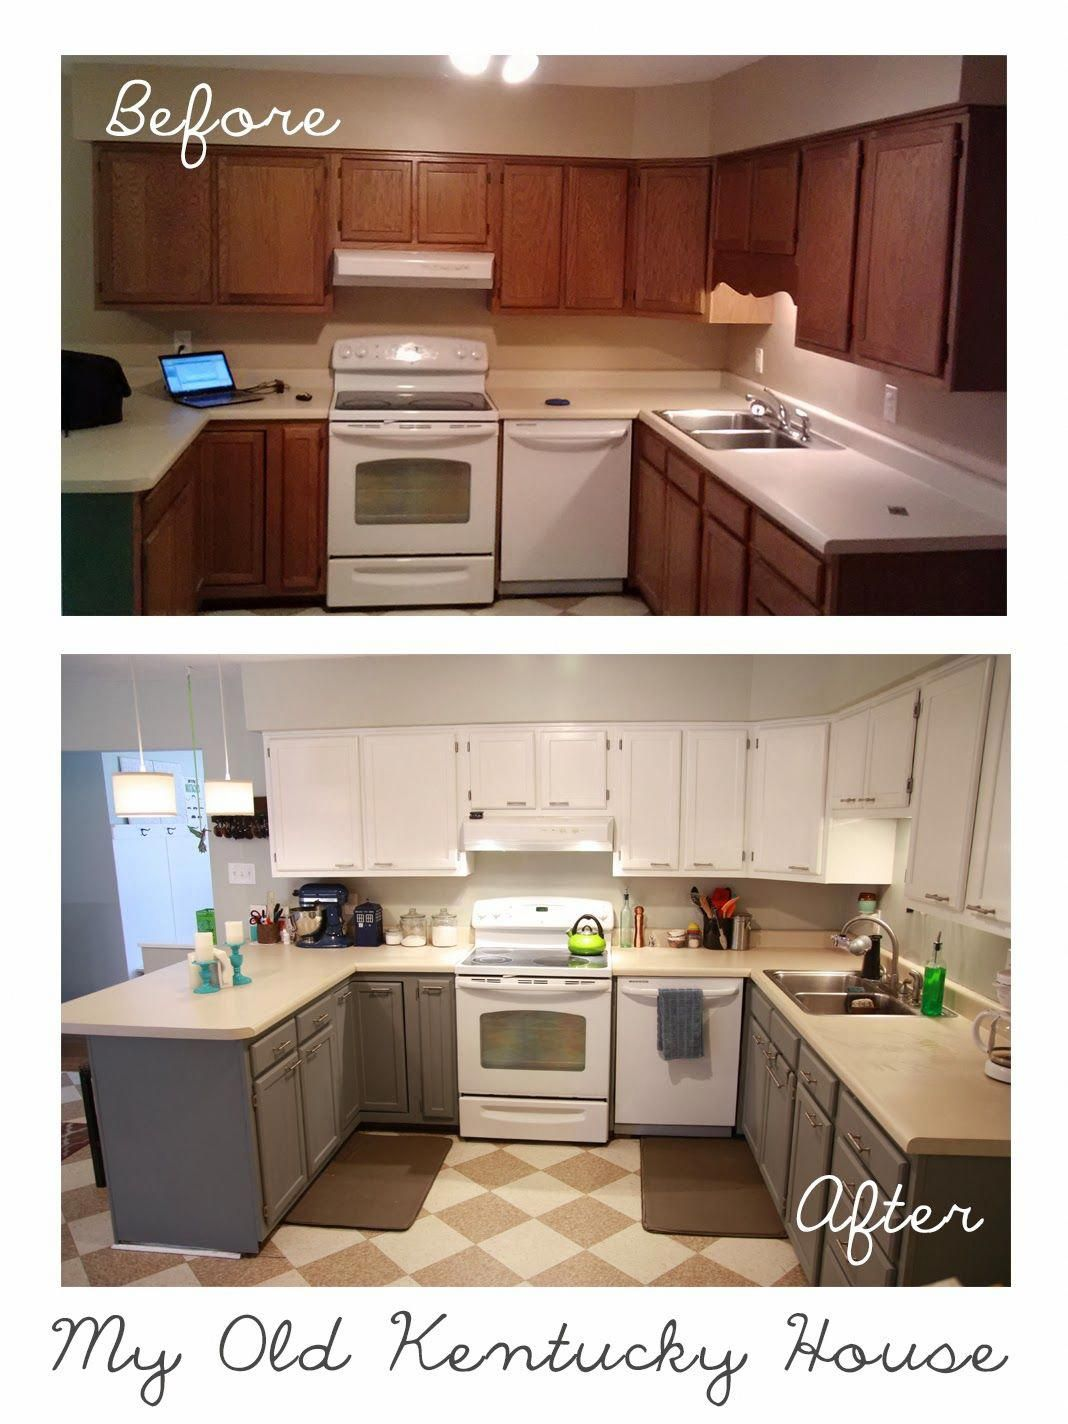 Kitchen Cabinets Before And After My Old Kentucky House Homeremodelingbeforeandafter Kitchen Cabinets Before And After Update Kitchen Cabinets Kitchen Design